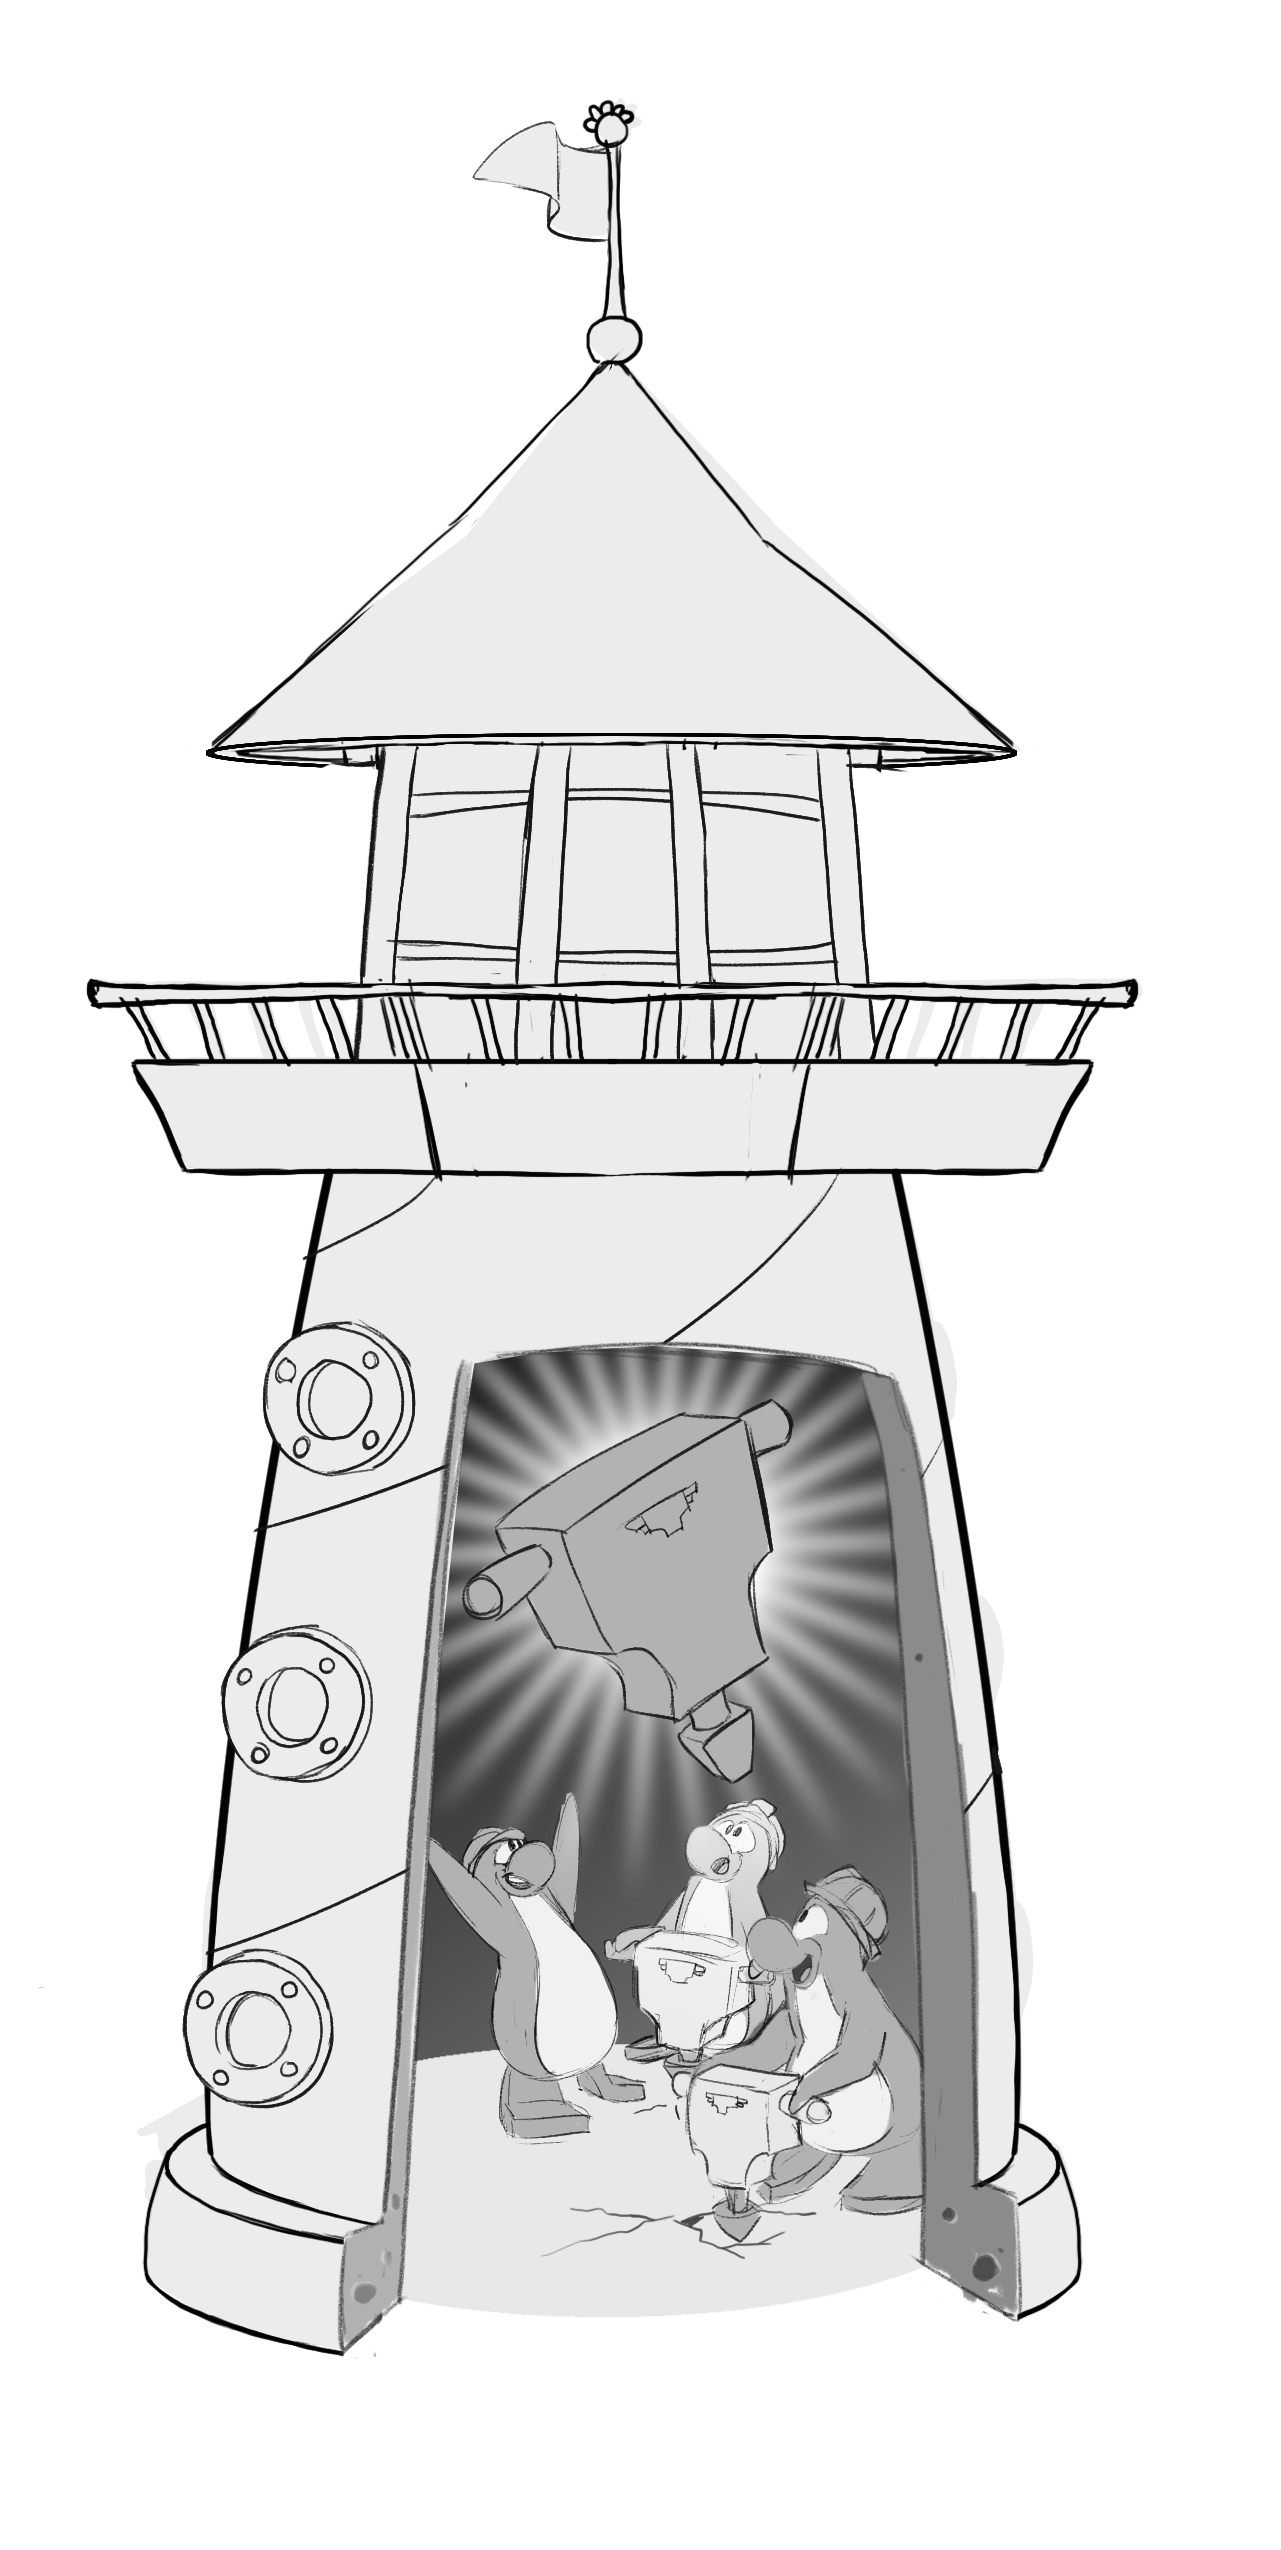 Drawing lighthouse pretty. Image fornewsfeed jackhammer png